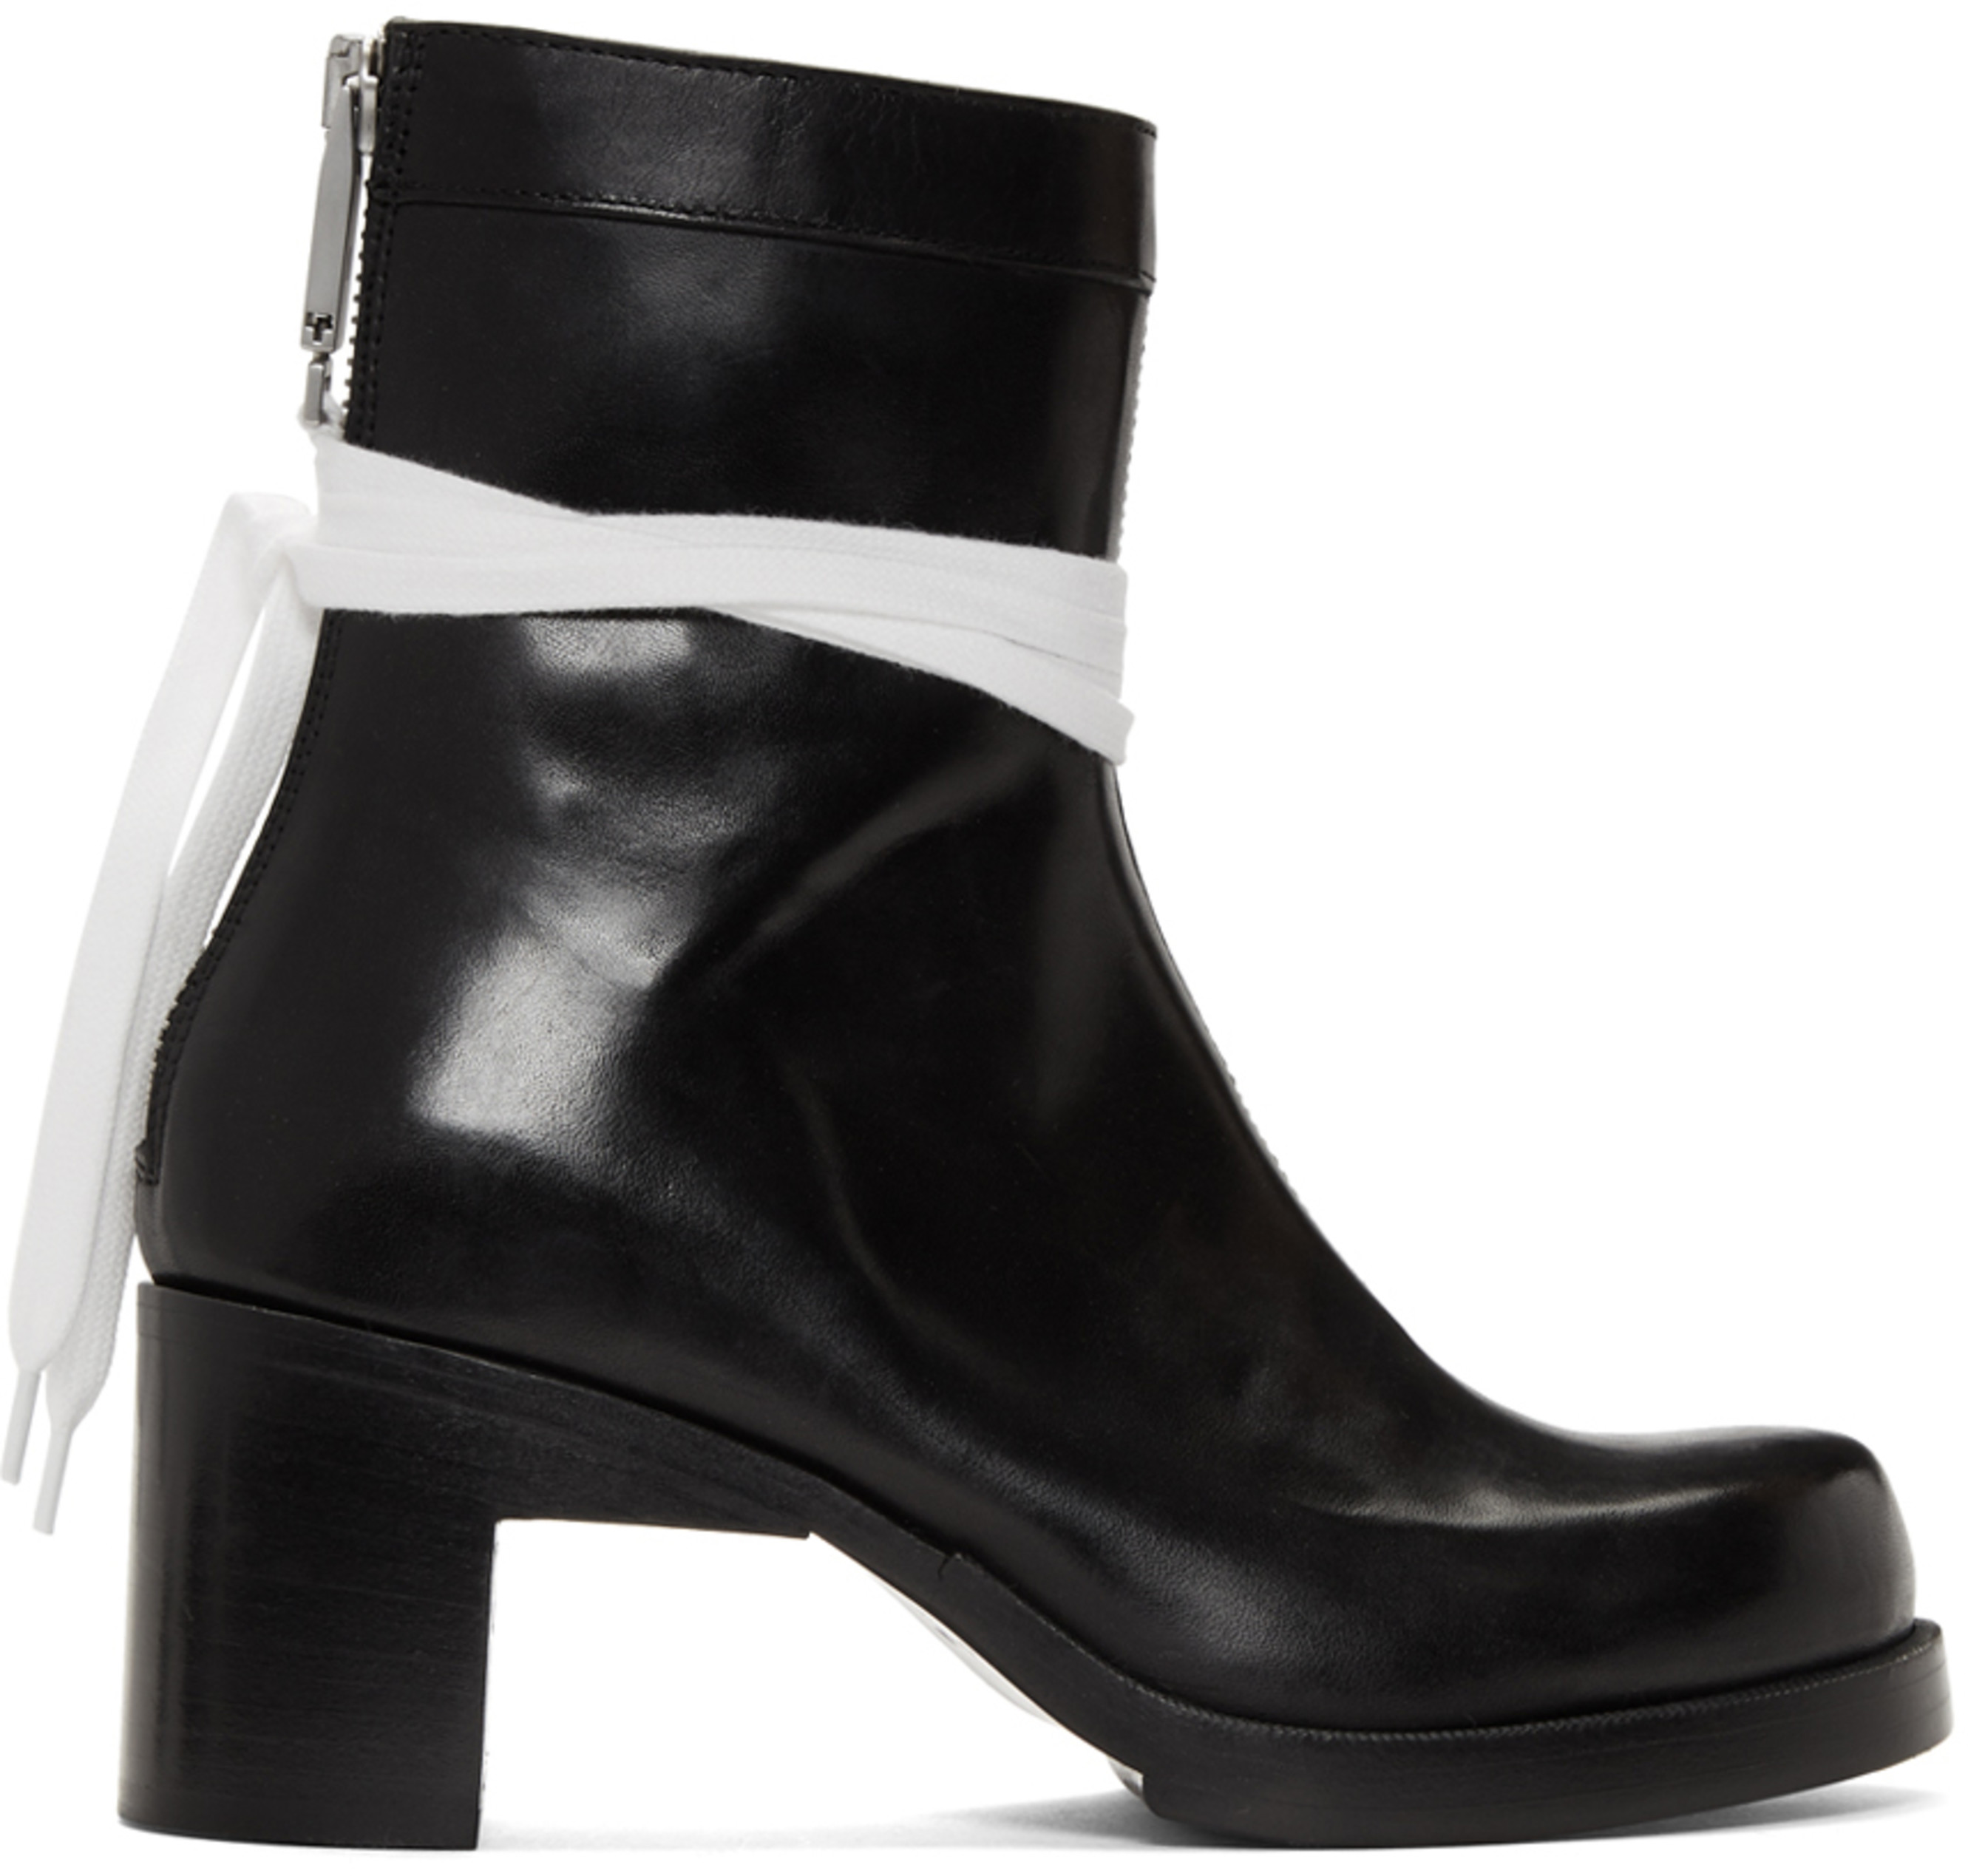 aad1bea94d3 Designer ankle boots for Women